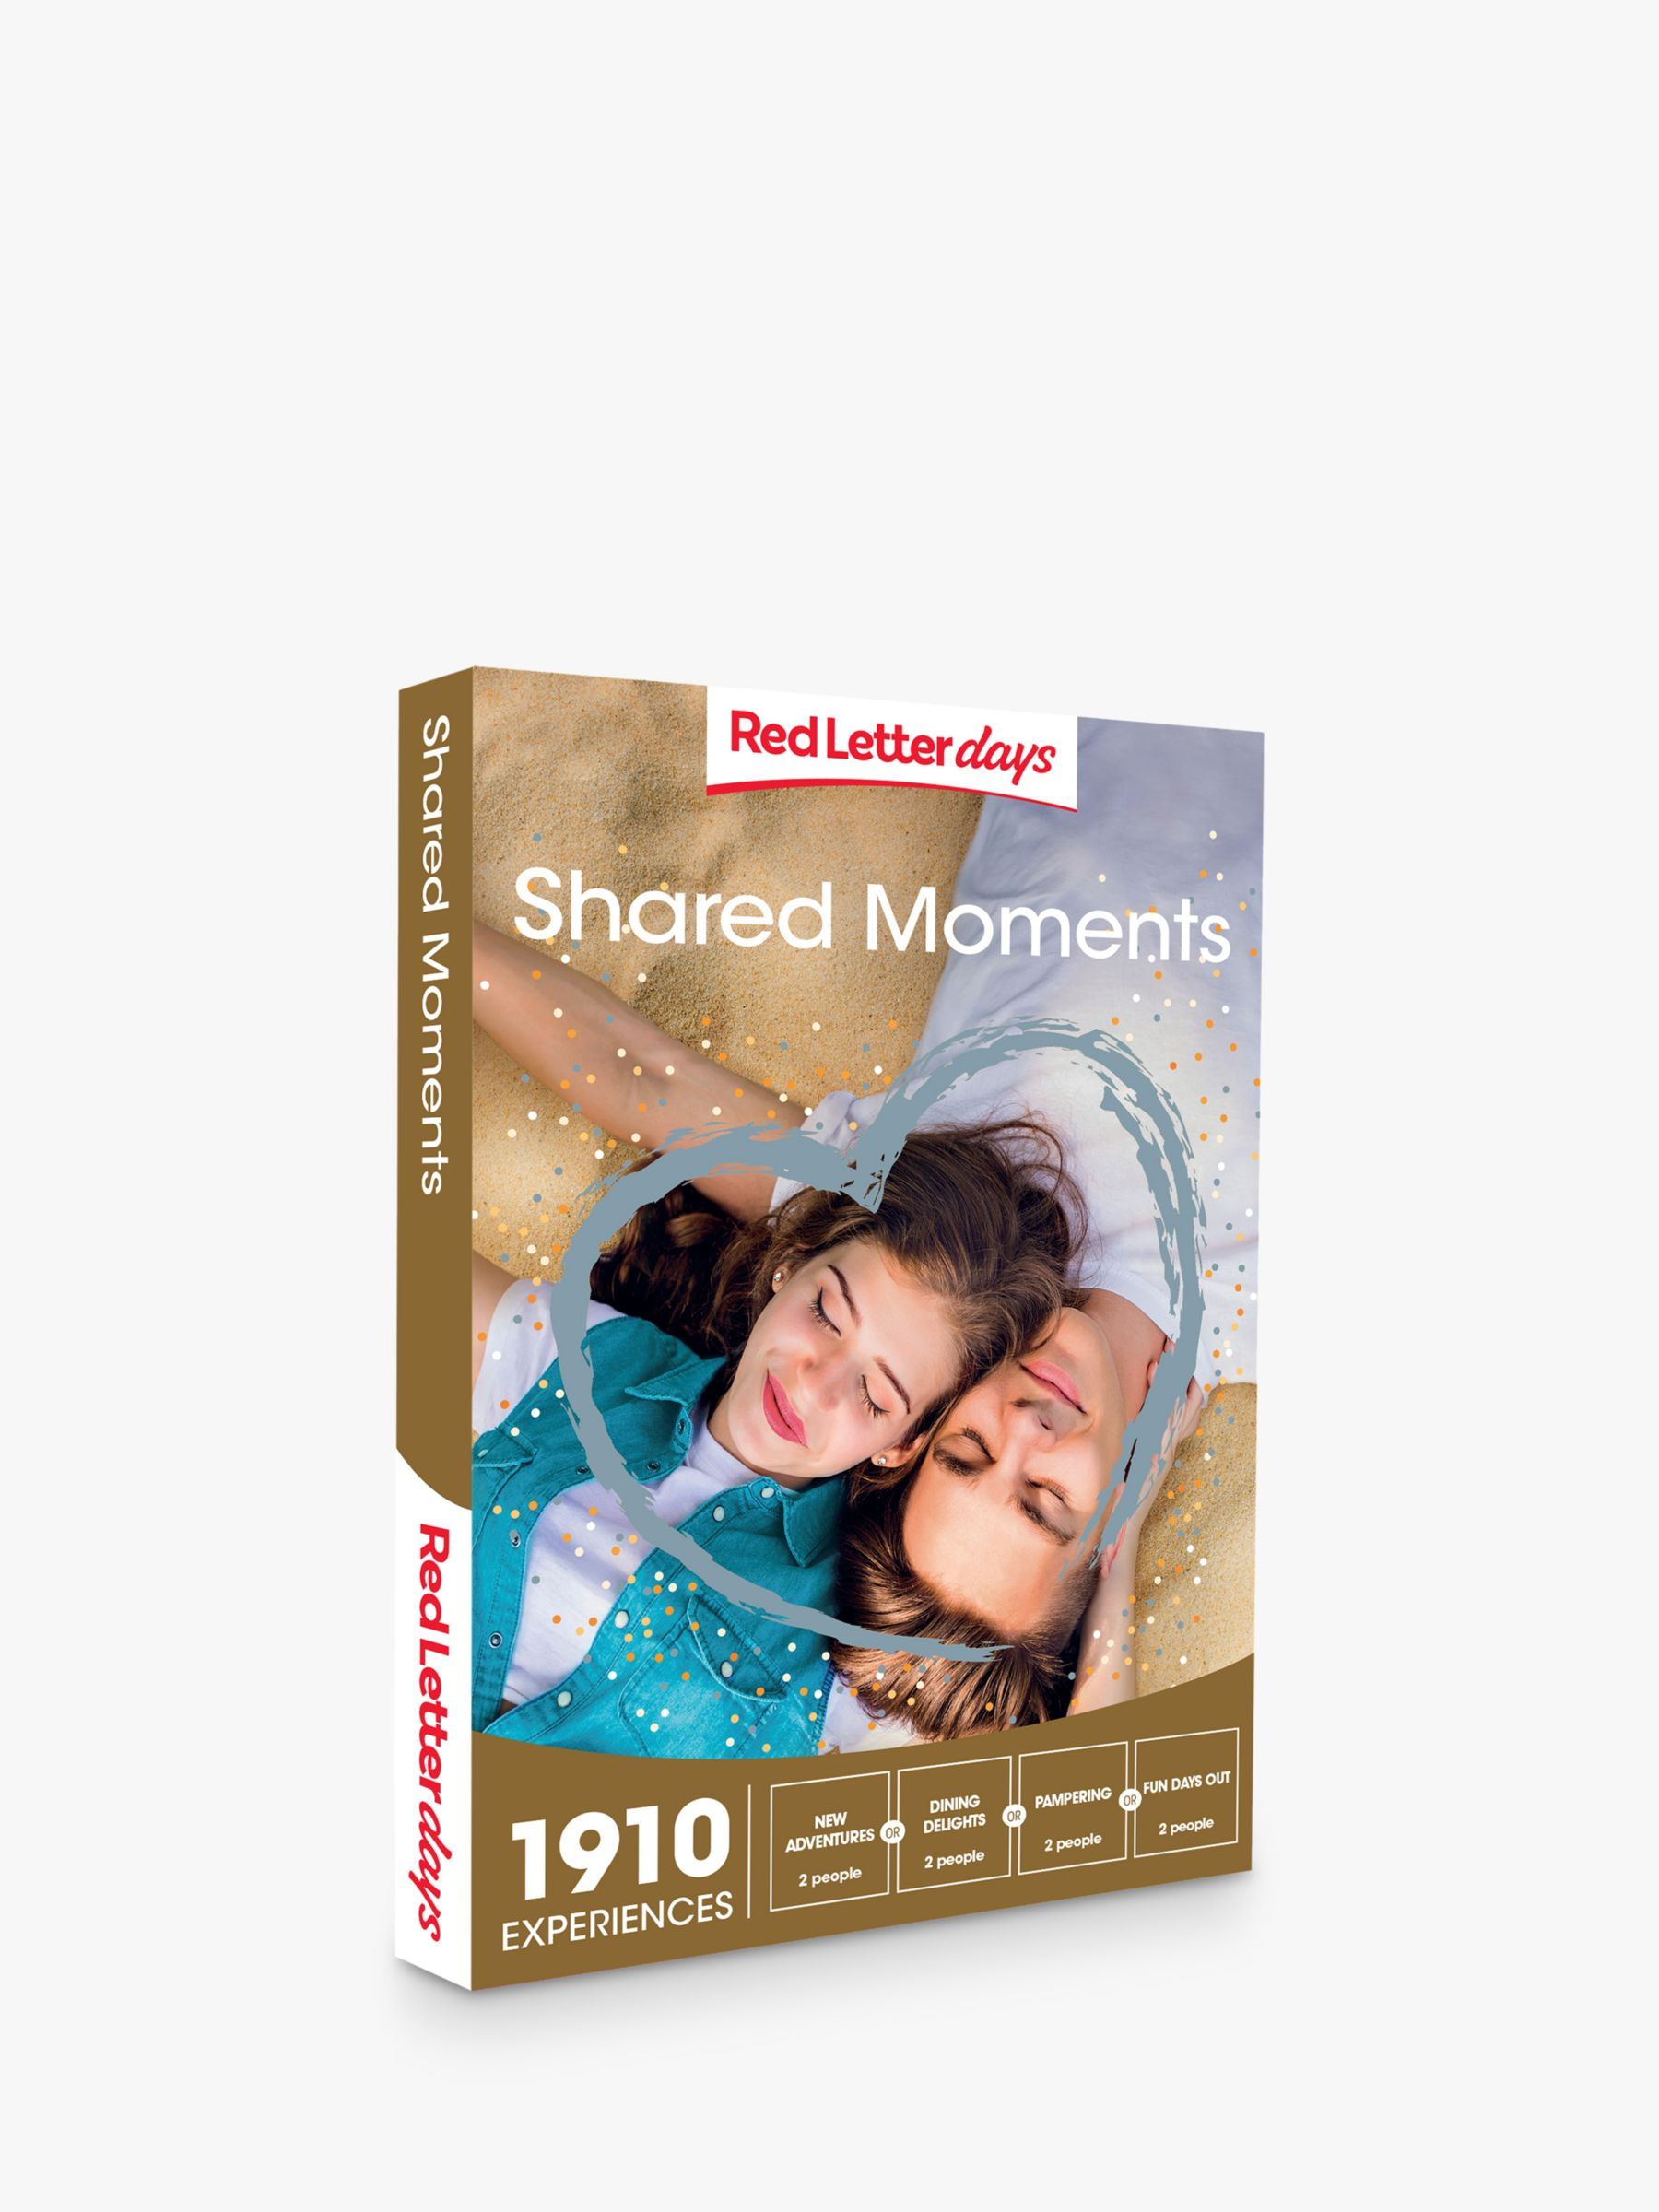 Red Letter Days Red Letter Days Shared Moments Gift Experience